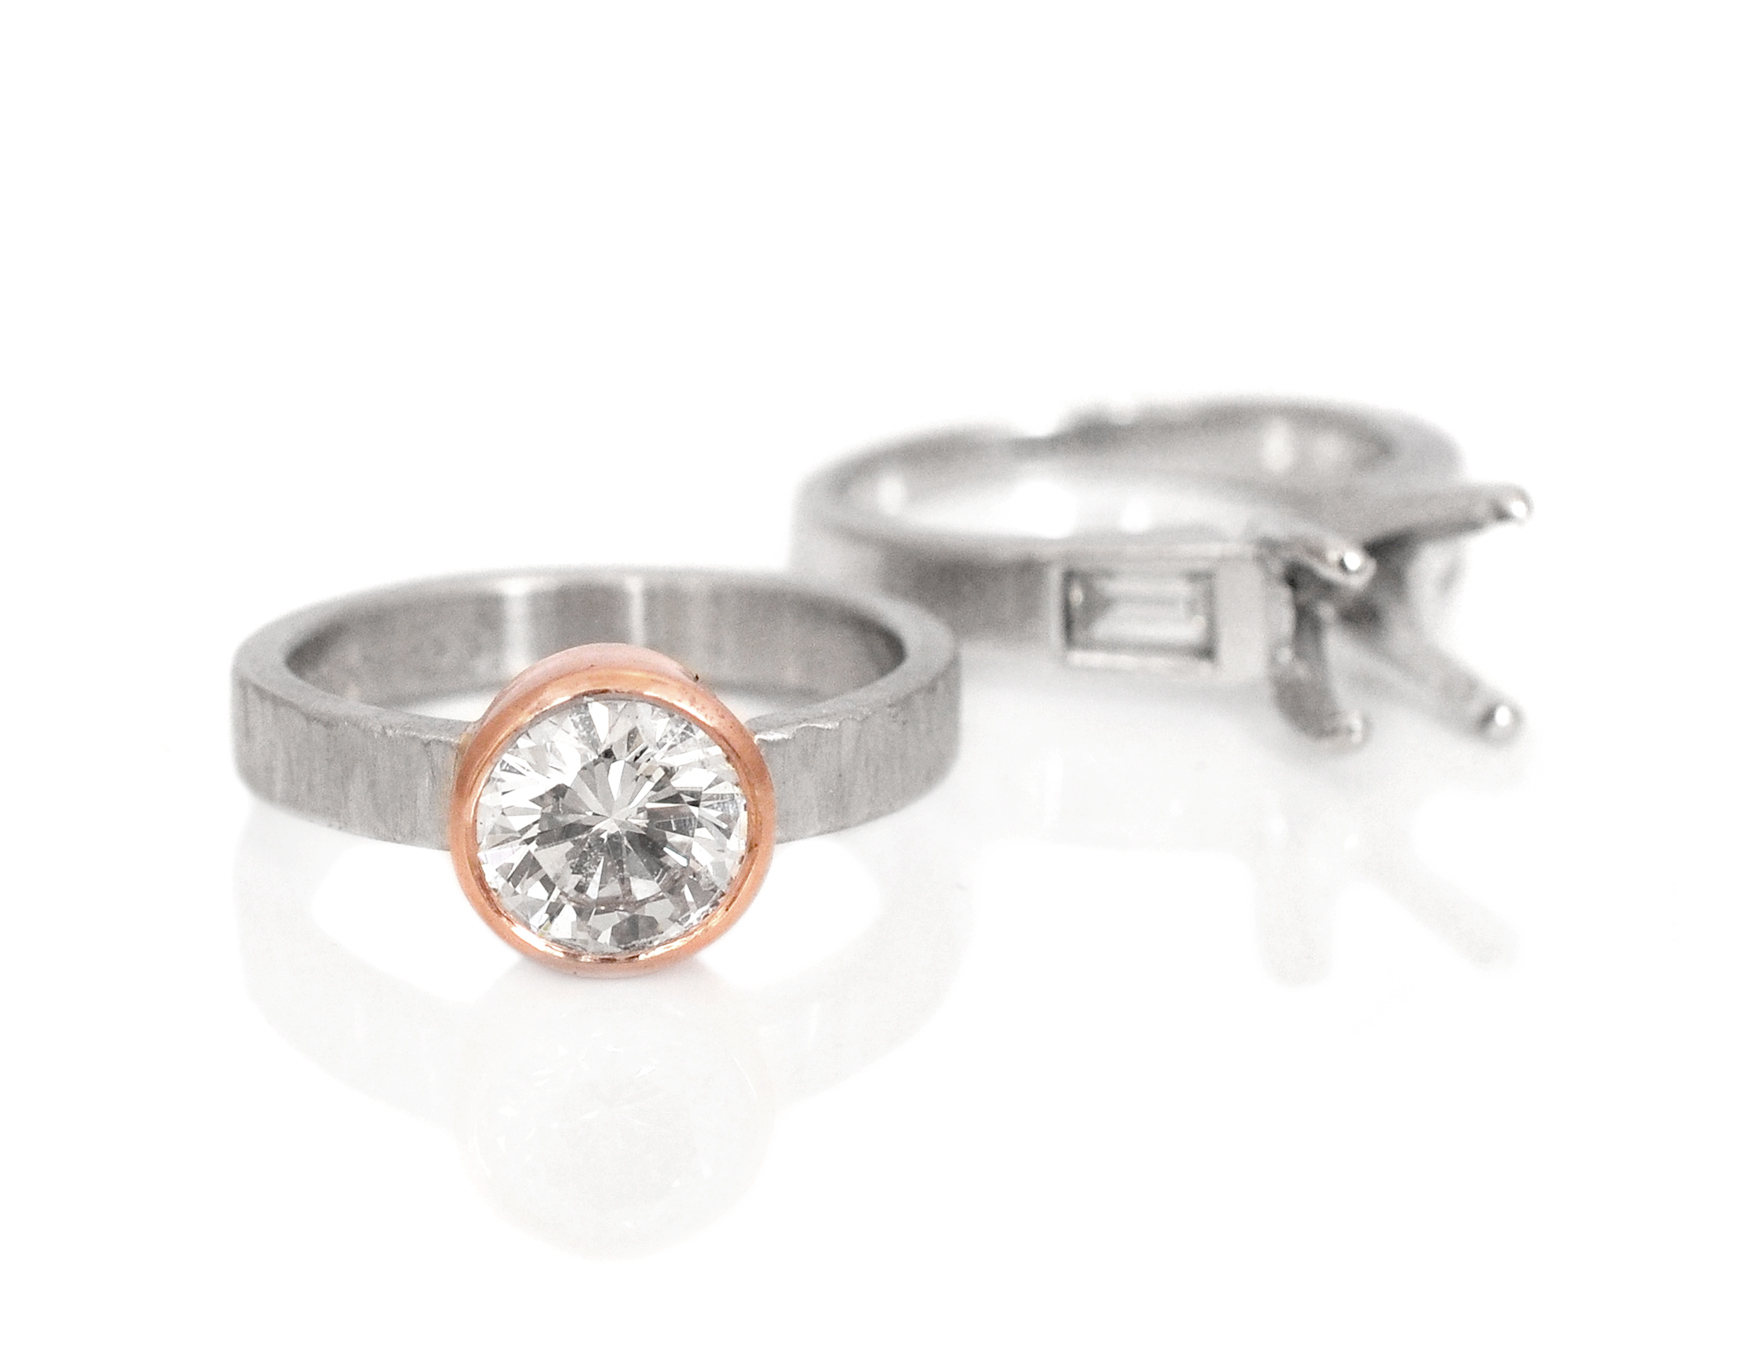 Nina wanted to update her beautiful diamond setting and fell in love with this mixed metal style. We re-set her diamond in a recycled 14k red gold bezel and inset it into the linear textured palladium band to keep the stone as low set as possible.